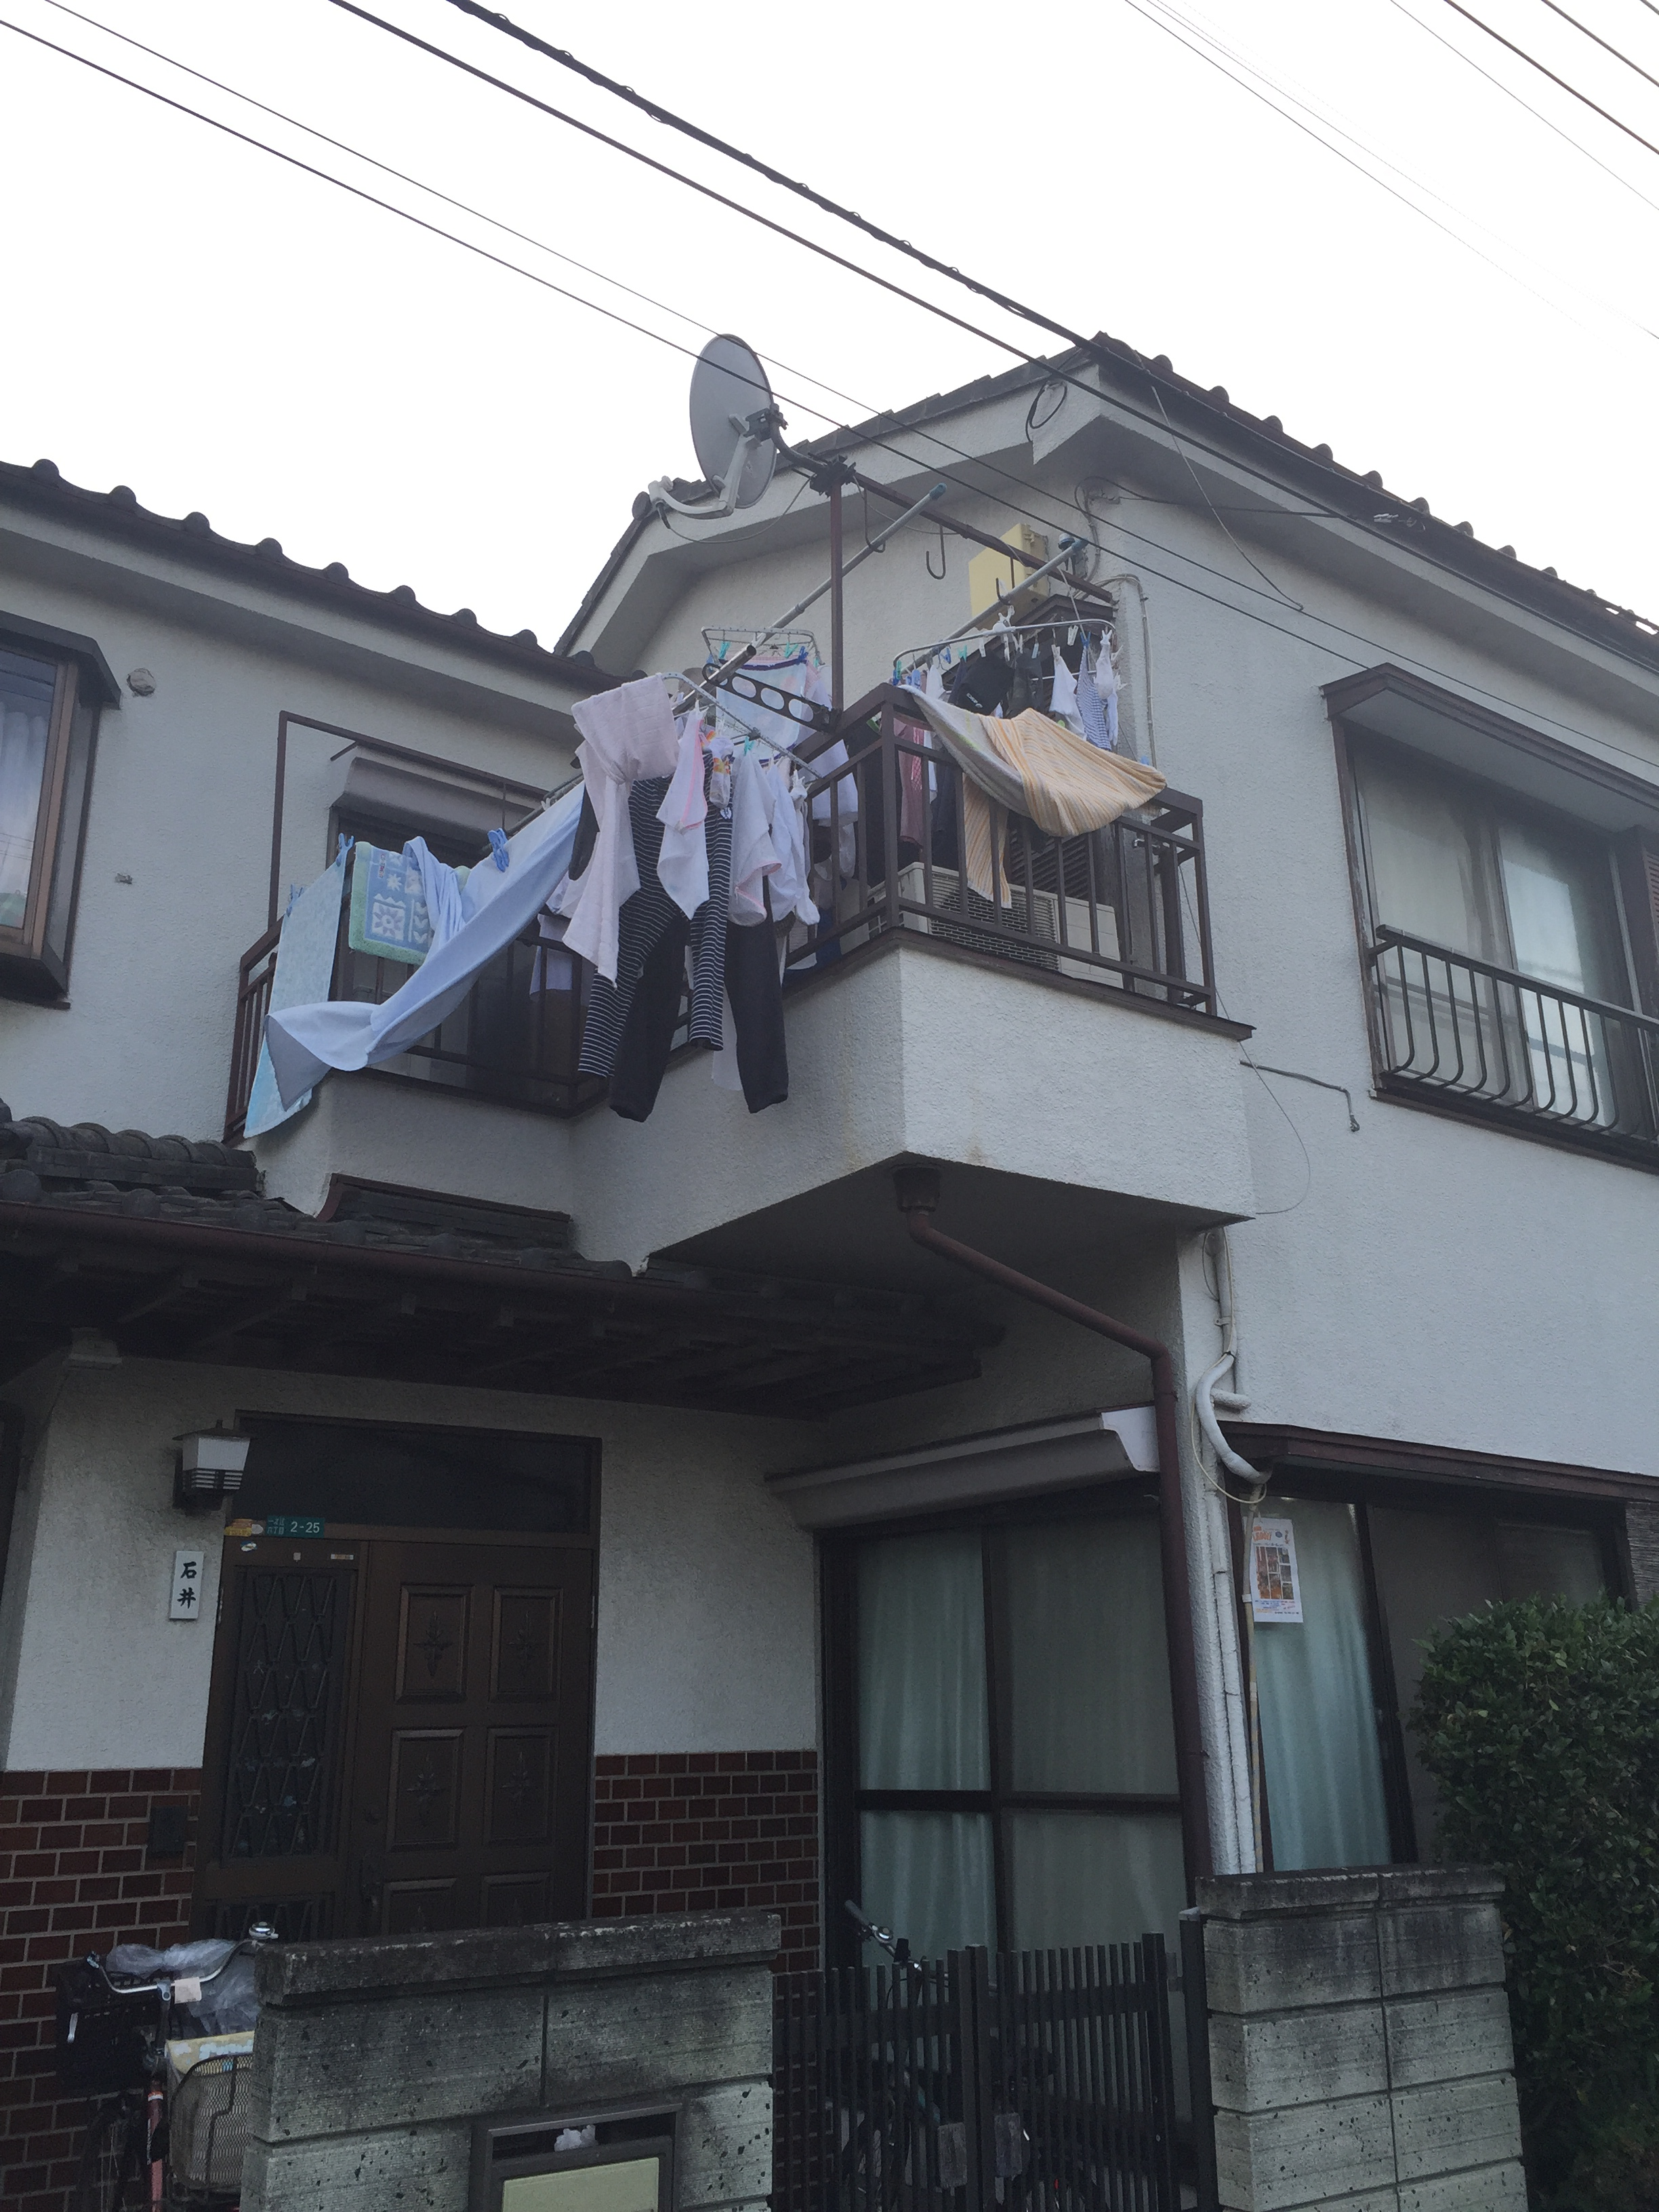 clothes drying outdoors in Japan